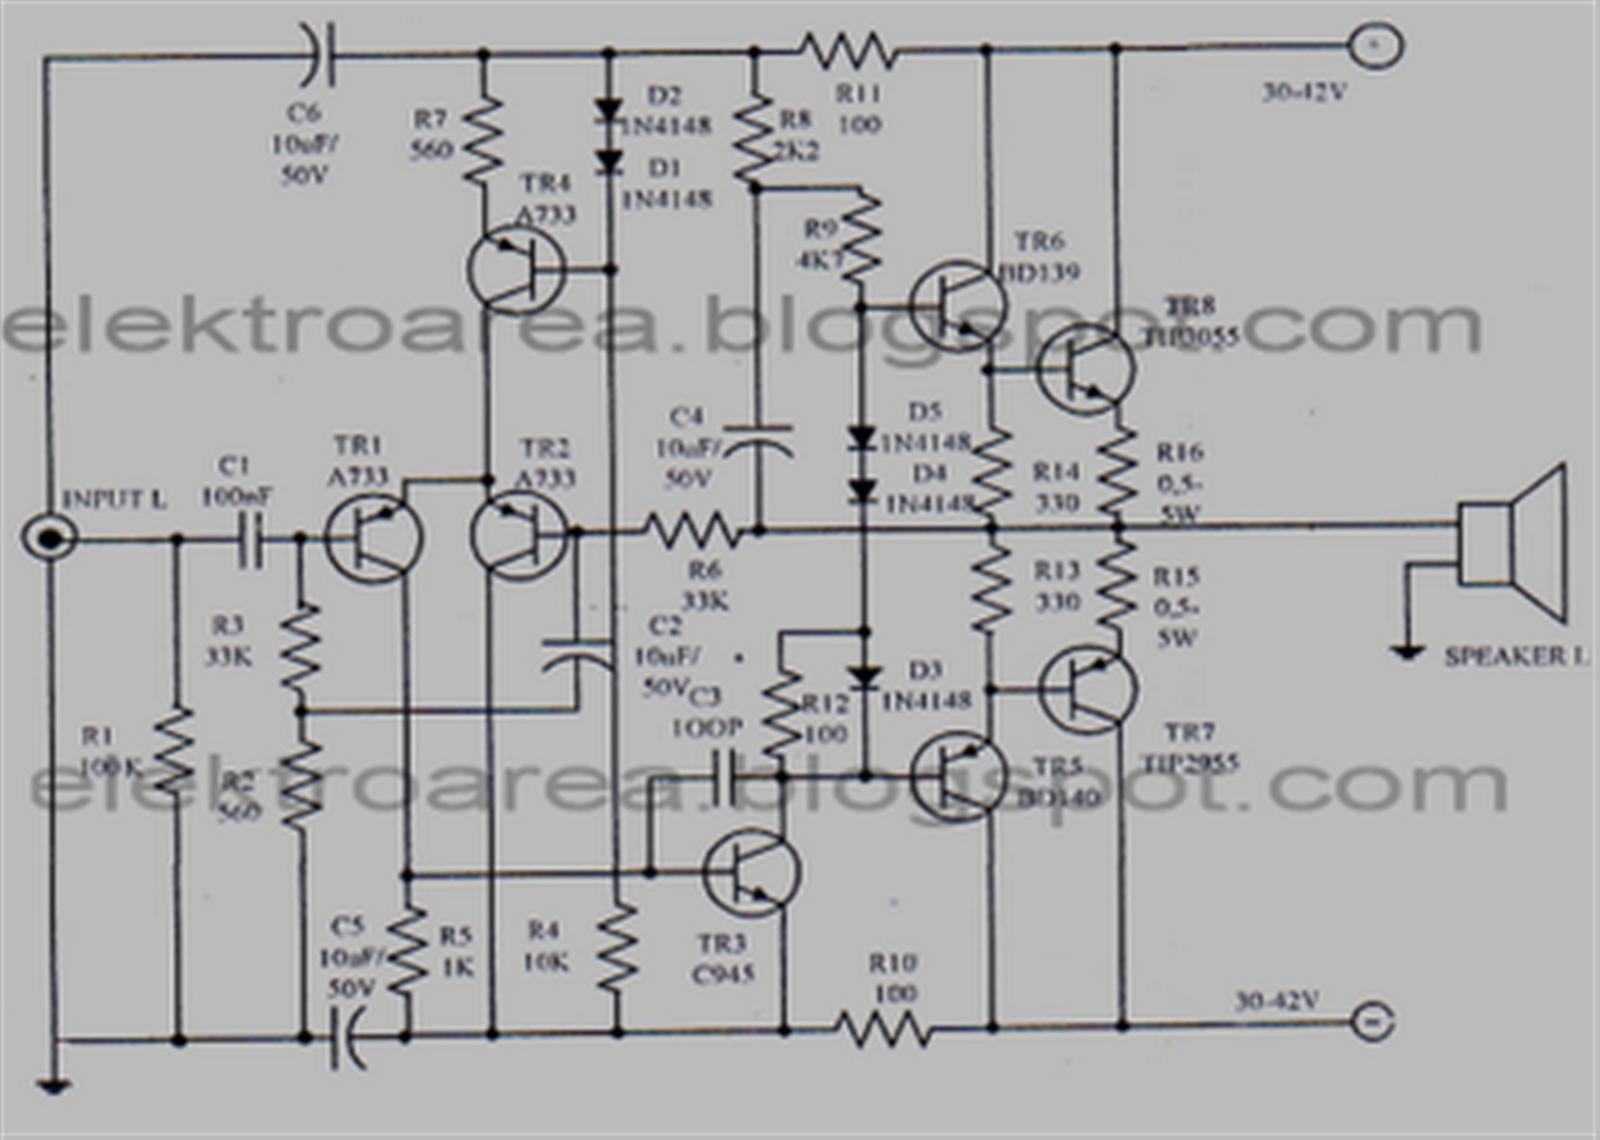 circuit schematic html with 413043844 on Sony Xperia T2 Charging Problem Ways Jumper Solution besides Automatic Street Light Project Proteus additionally Buck Converter as well Unusual Resistor Symbol Resitor With Z Overlaid together with Operation.